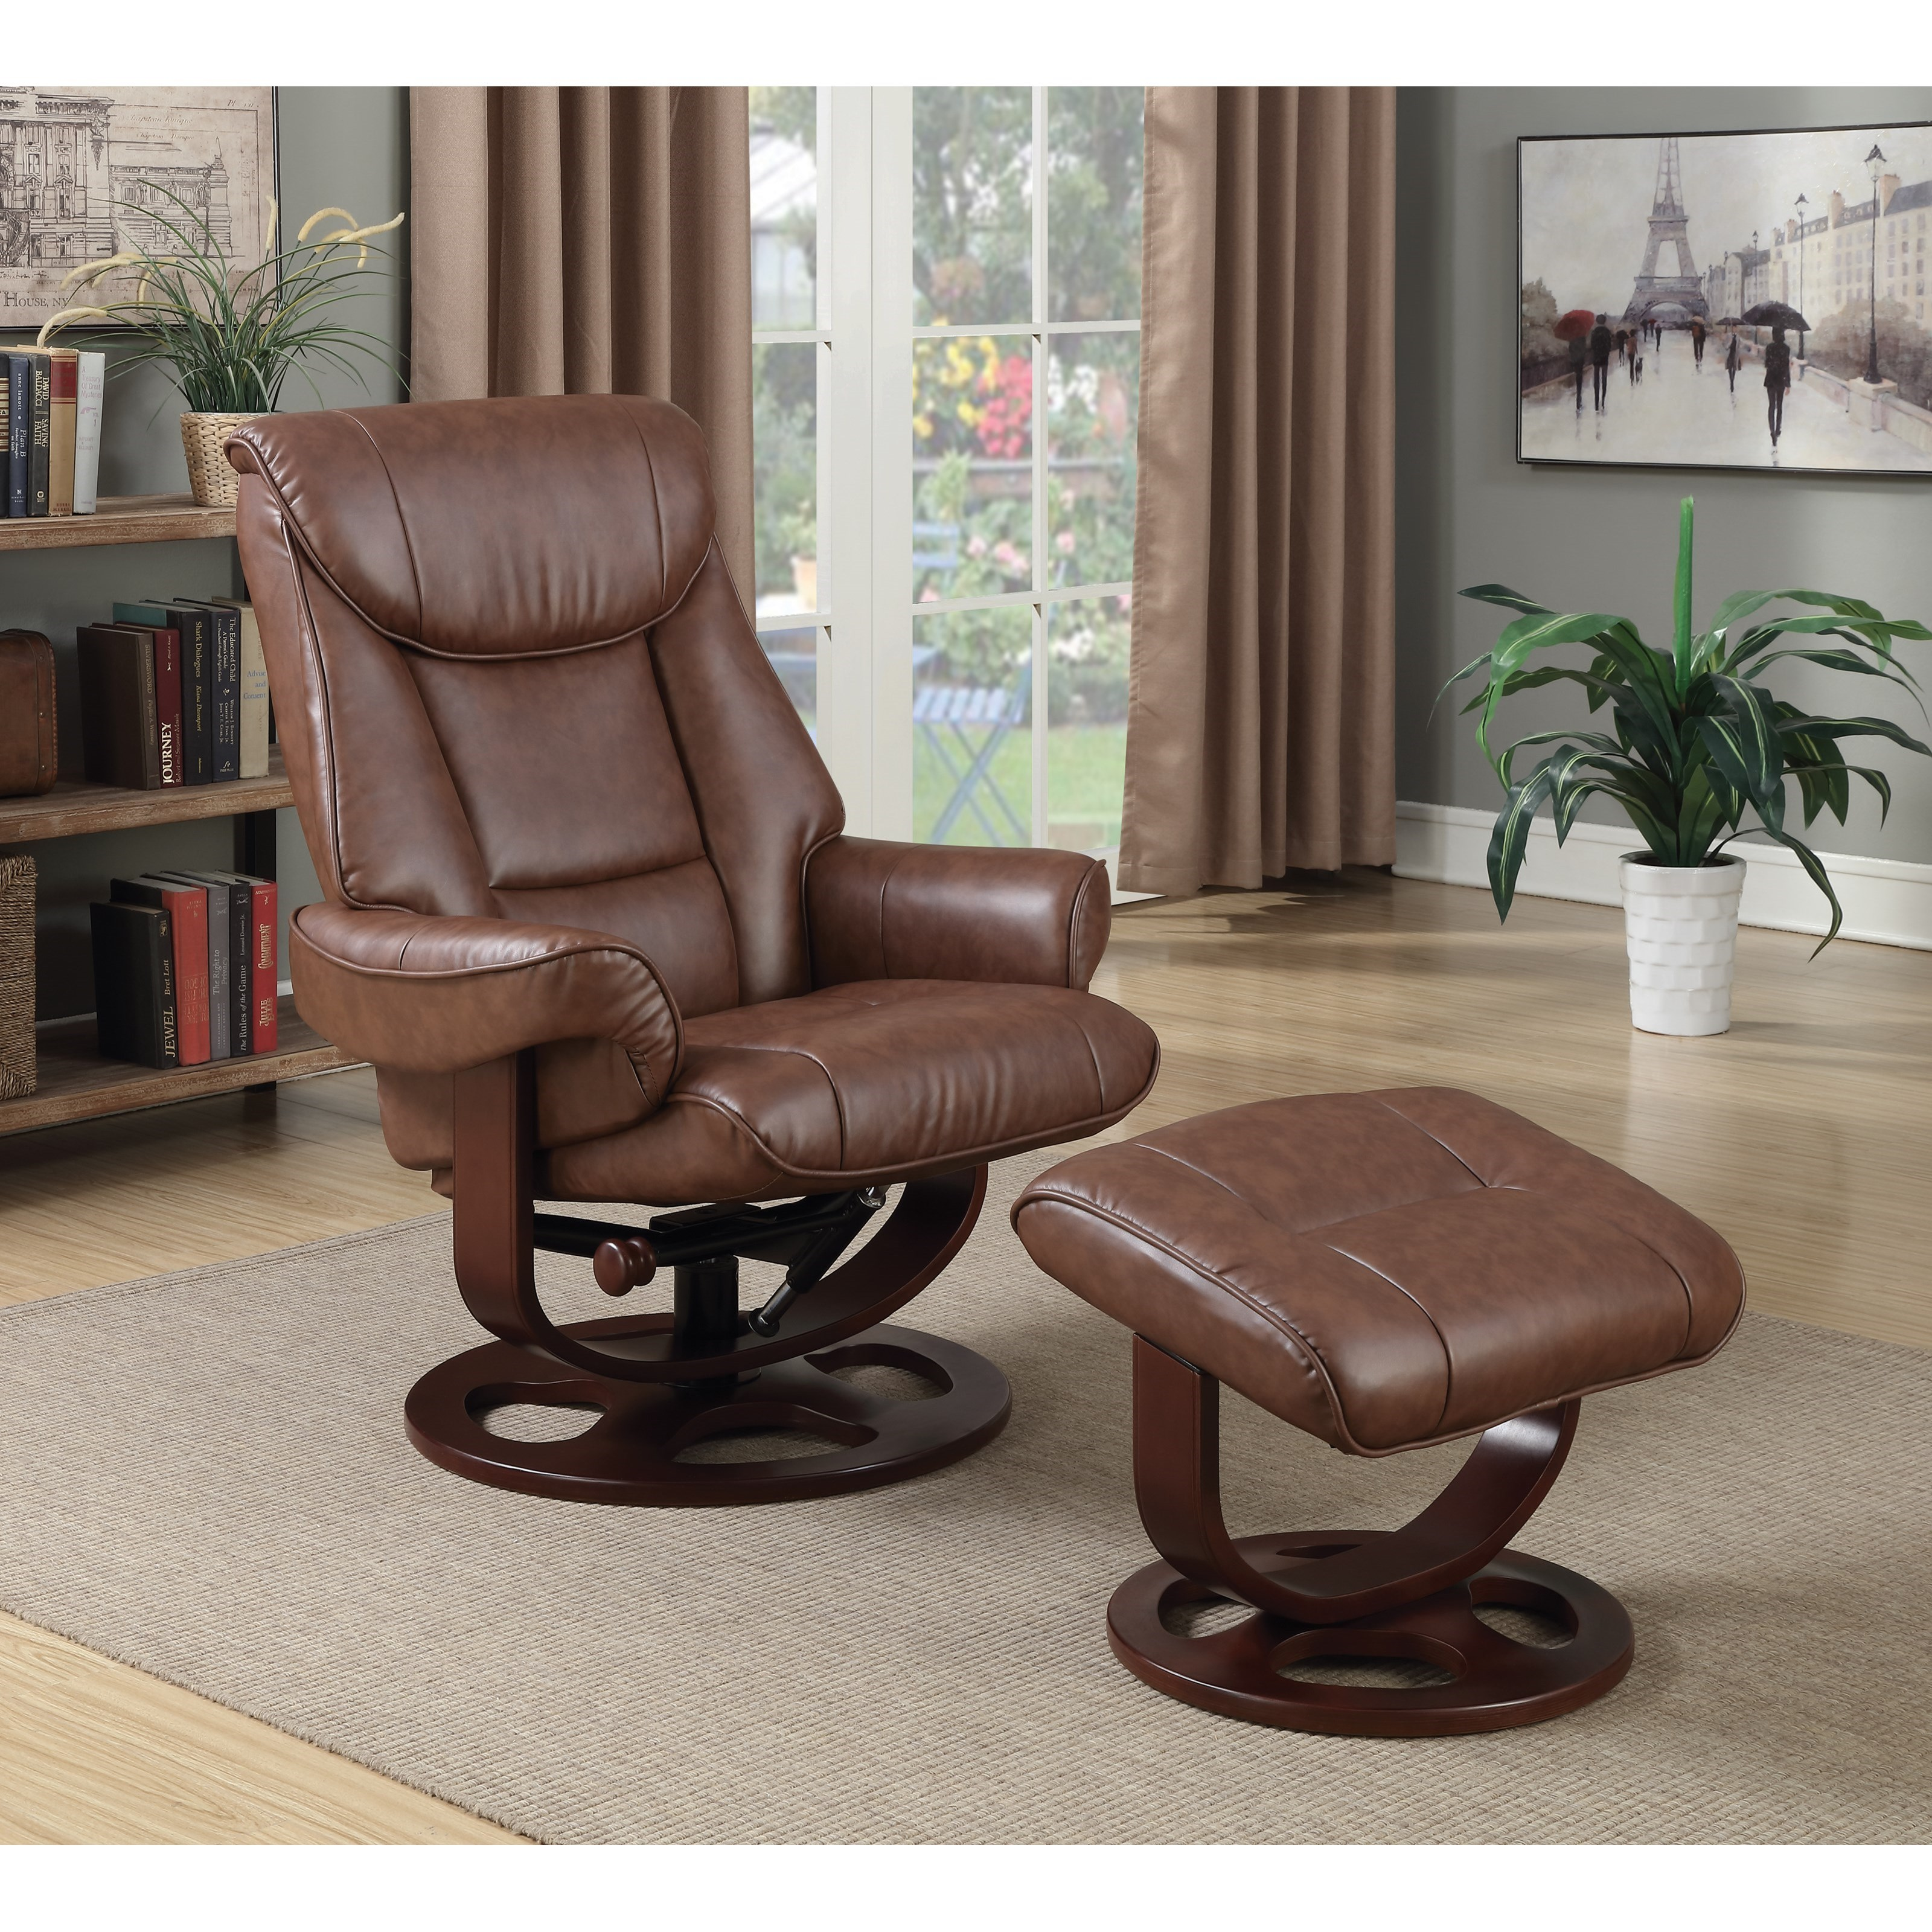 coaster recliners with ottomans ergonomic chair and ottoman darvin furniture reclining chair. Black Bedroom Furniture Sets. Home Design Ideas